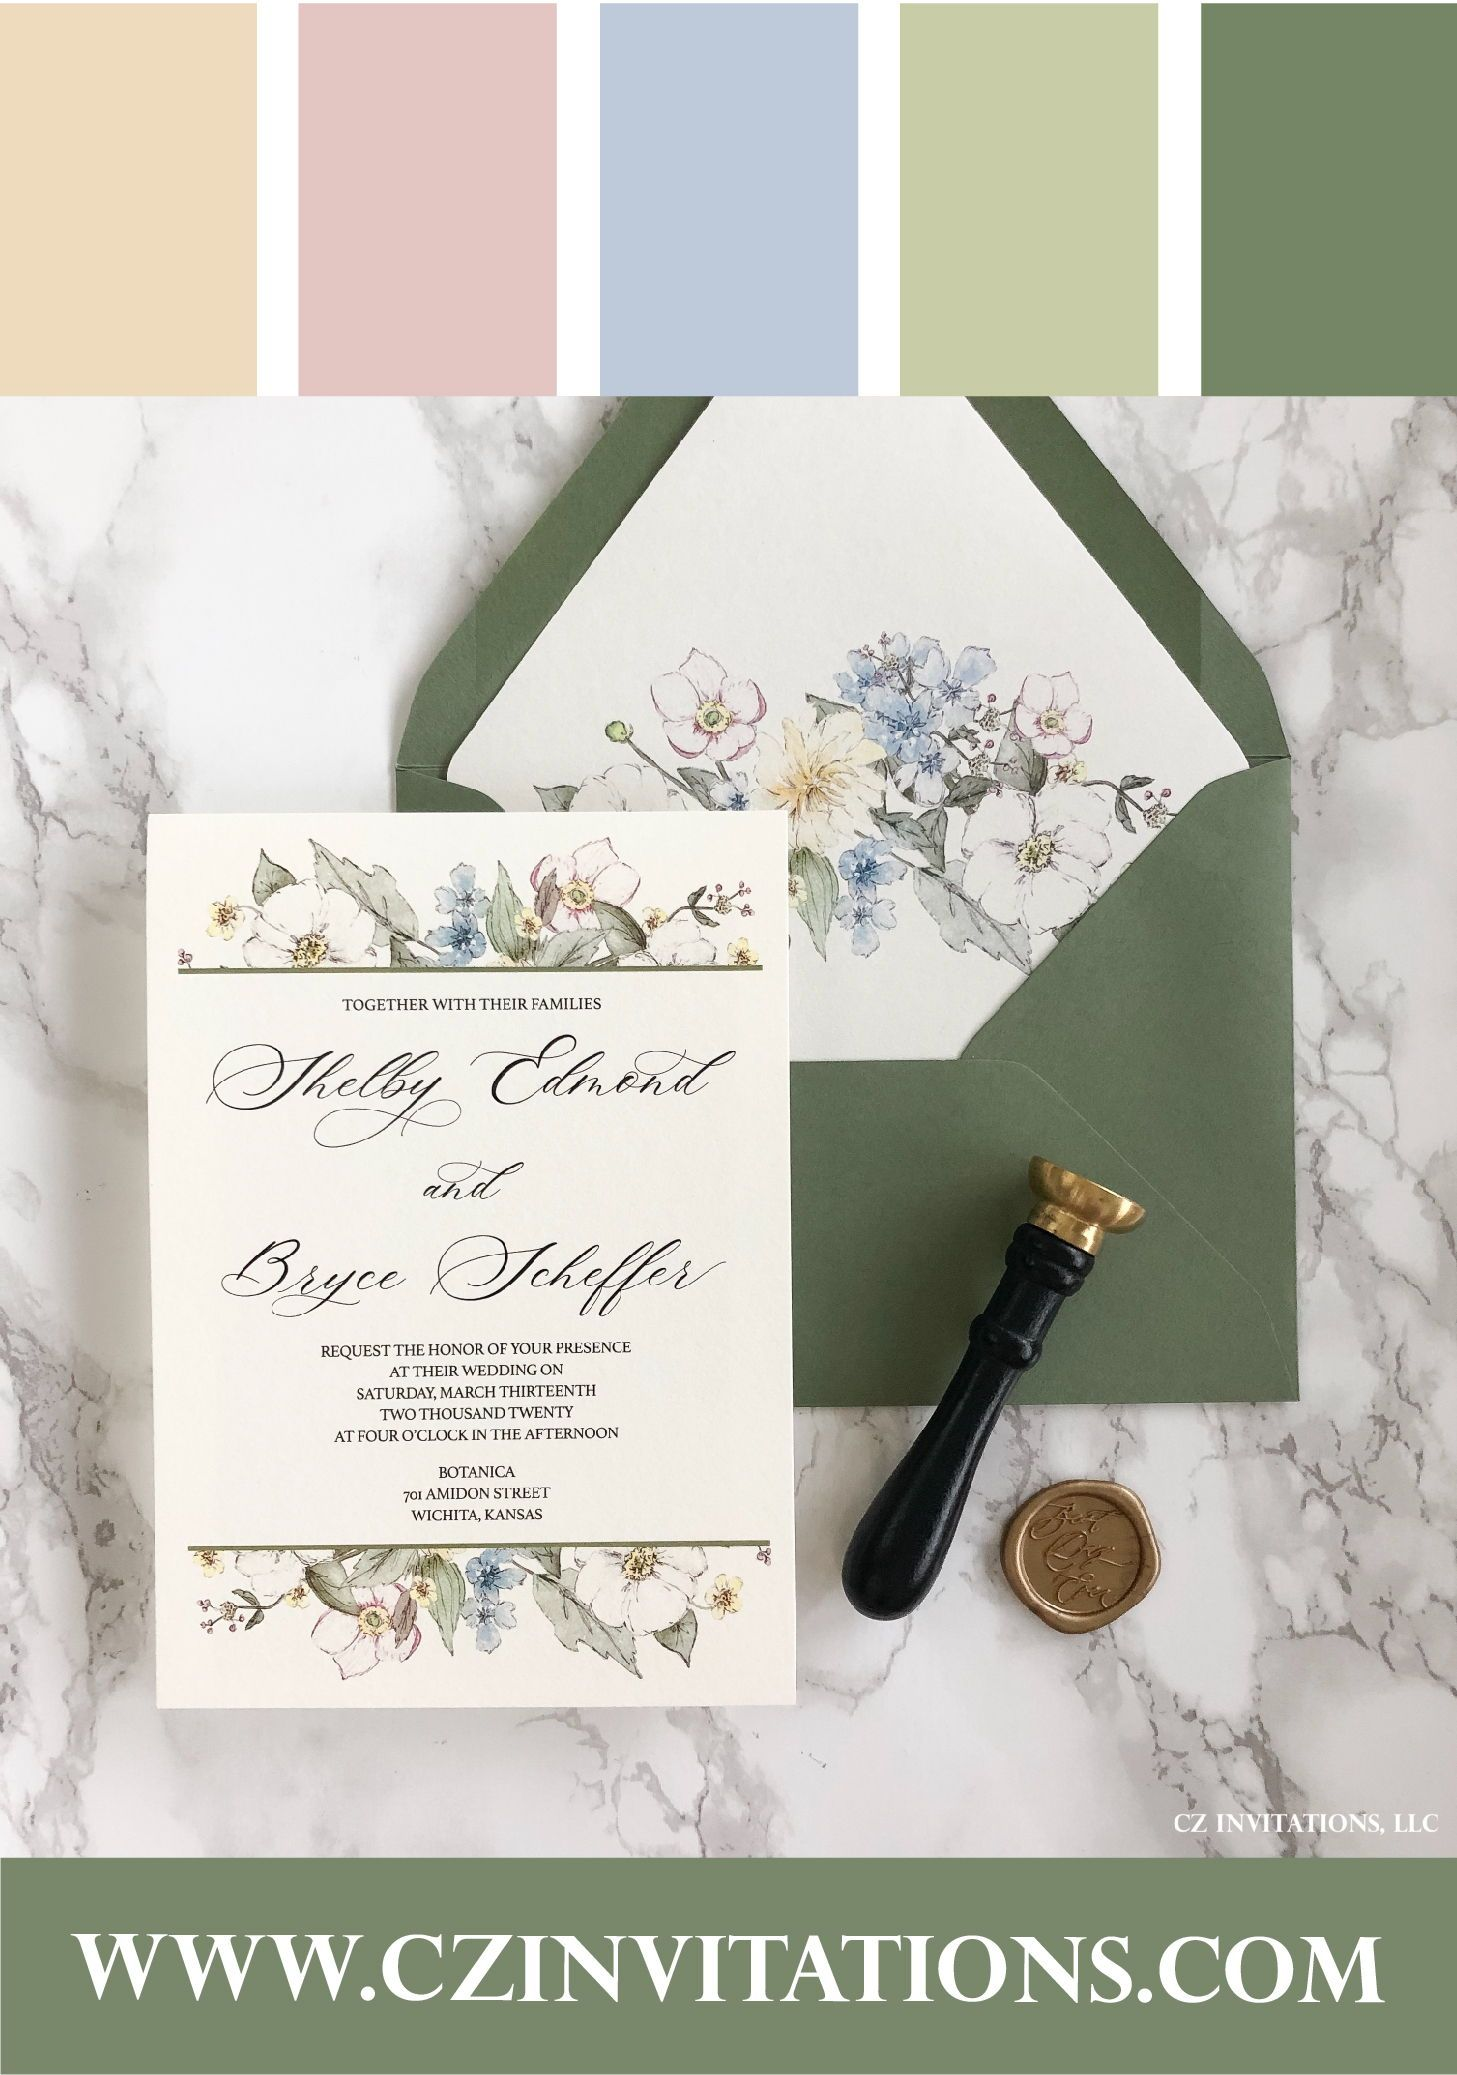 Green Floral Vellum Wedding Invitation With Wax Seal Floral Watercolor Wedding Invitation Vellum Invite In 2020 Watercolor Floral Wedding Invitations Green Wedding Invitations Floral Wedding Invitations